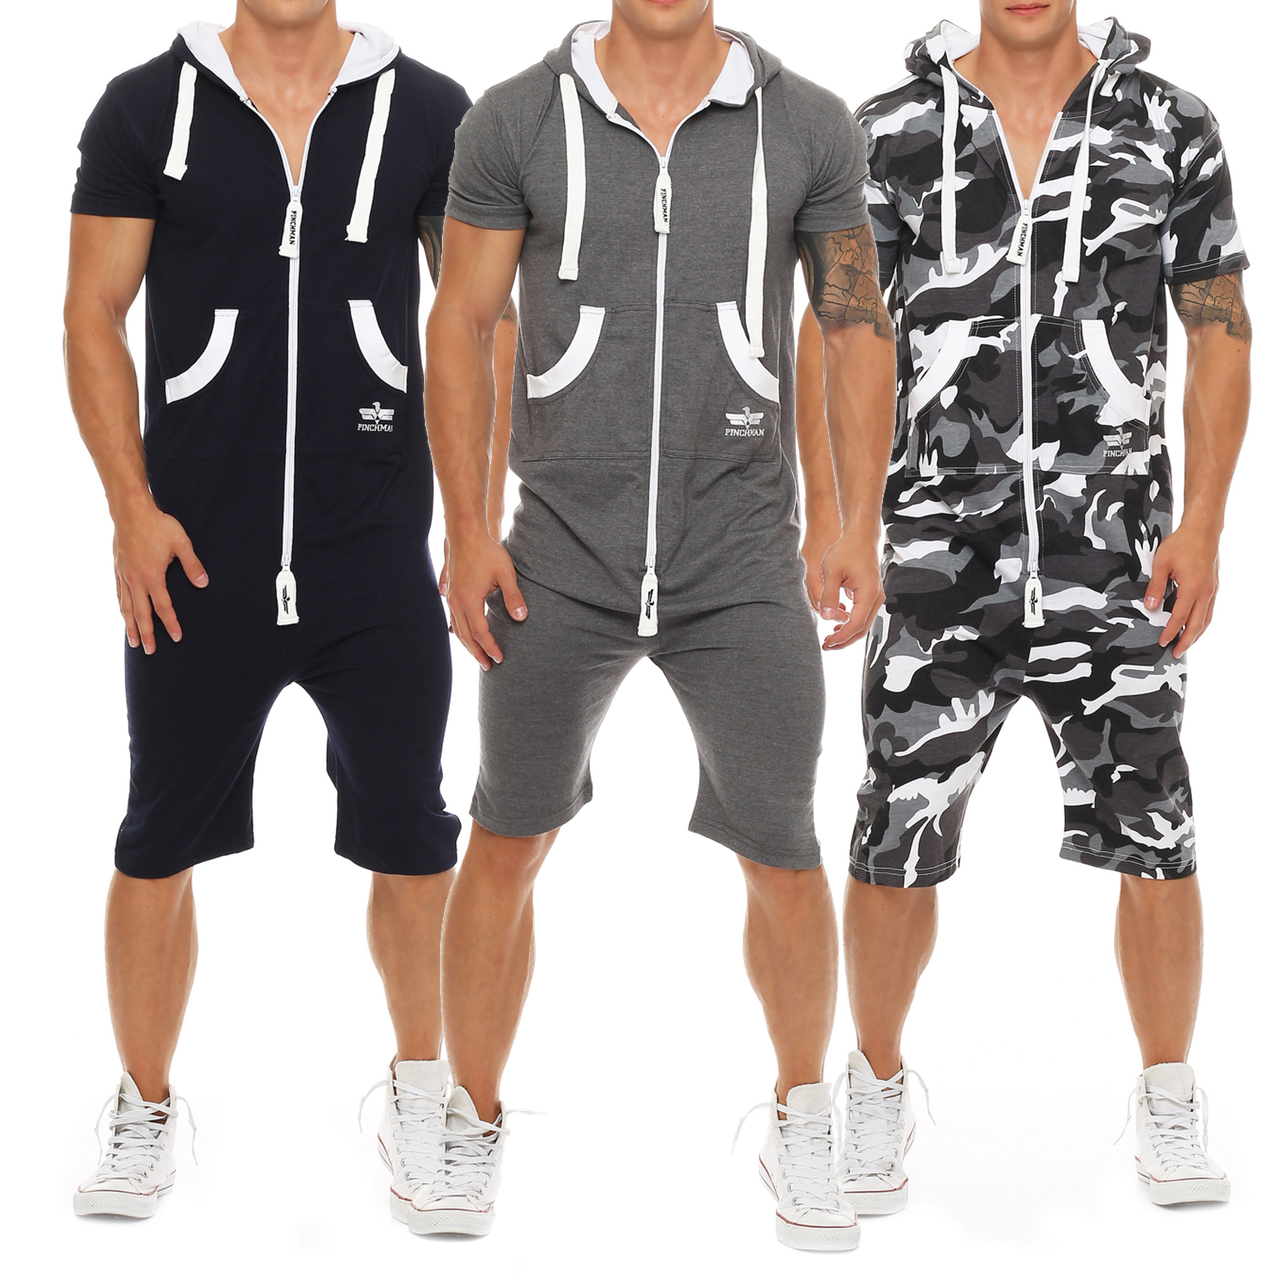 finchman herren sommerjumpsuit kurz anzug overall onesie. Black Bedroom Furniture Sets. Home Design Ideas